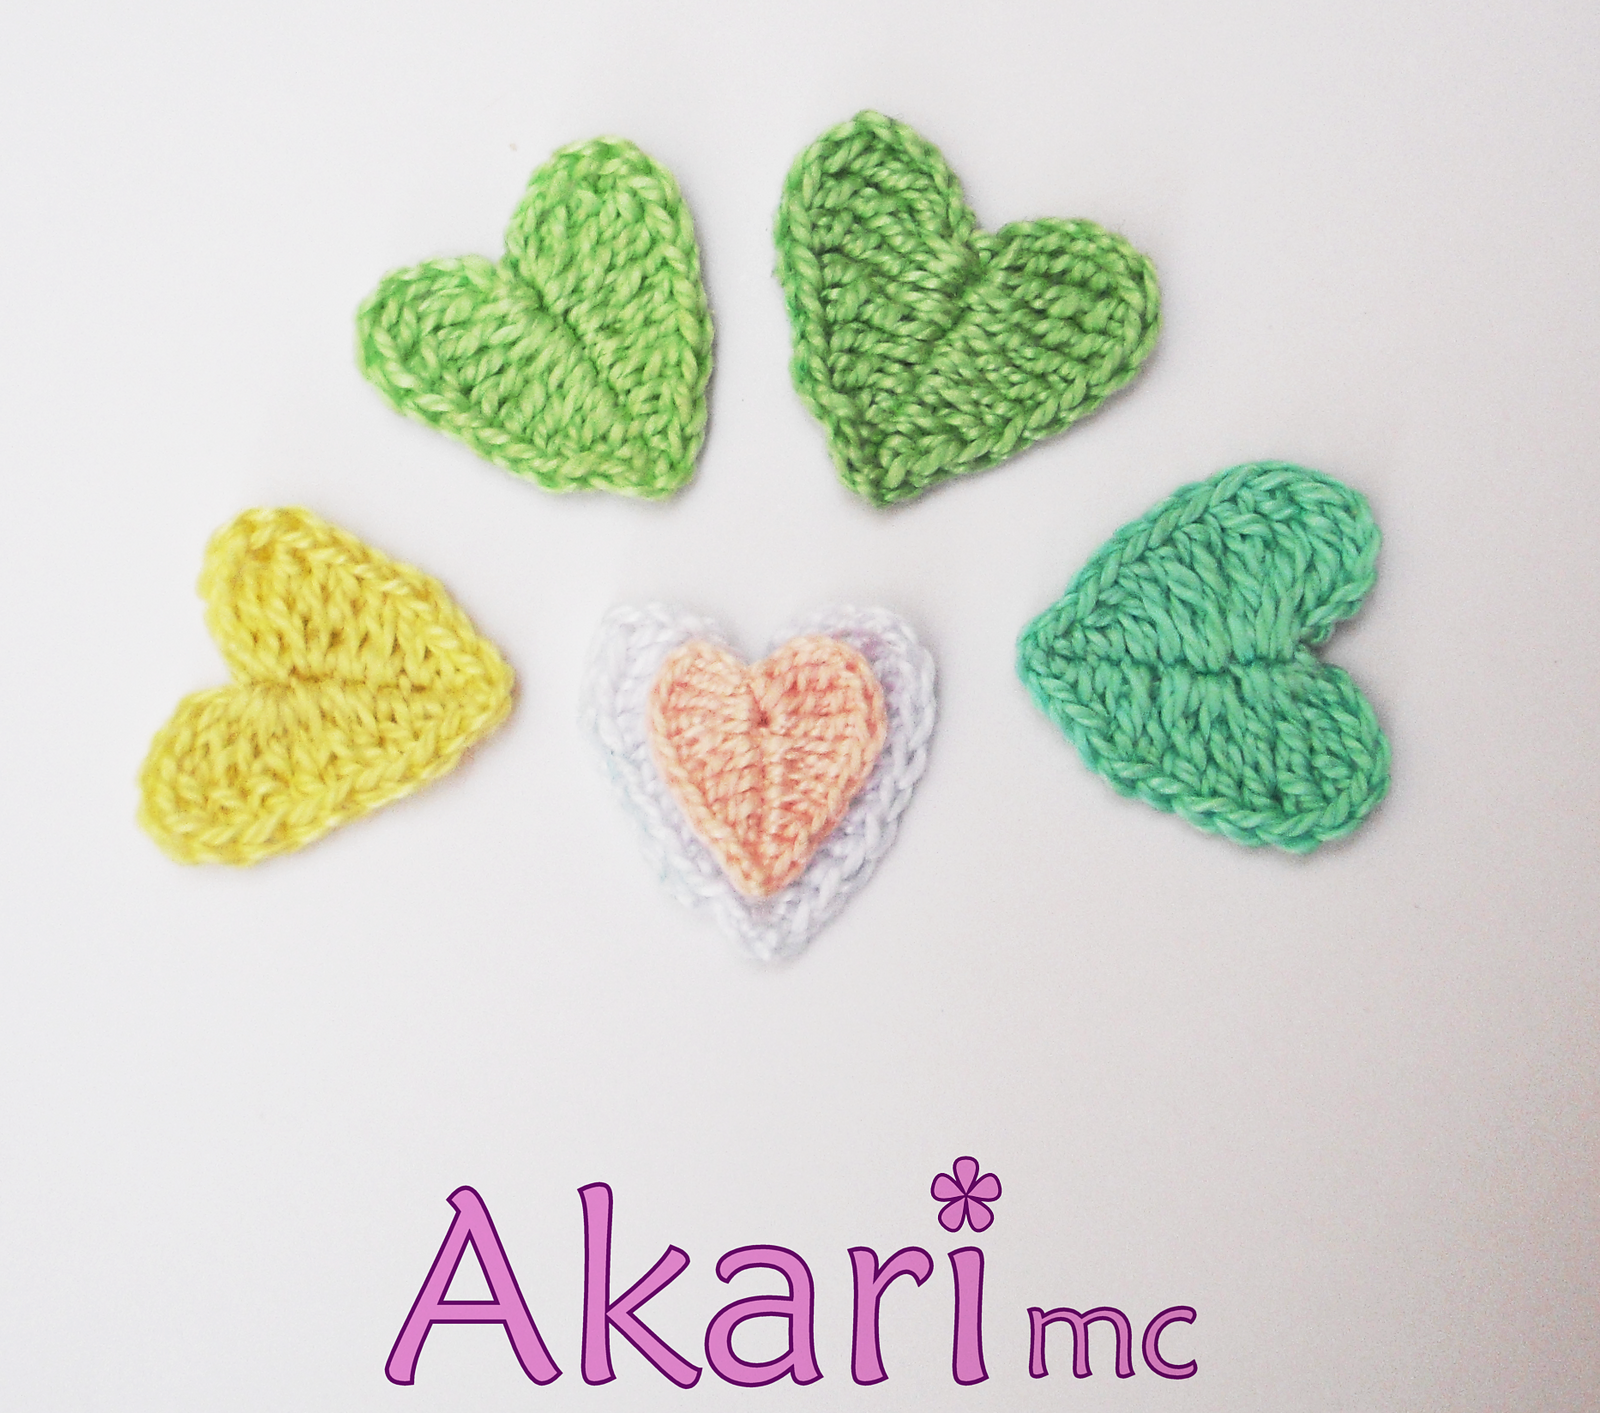 Ravelry beautiful crochet hearts suitable for beginners cheap ravelry beautiful crochet hearts suitable for beginners cheap crochet pattern by akari mc bankloansurffo Images